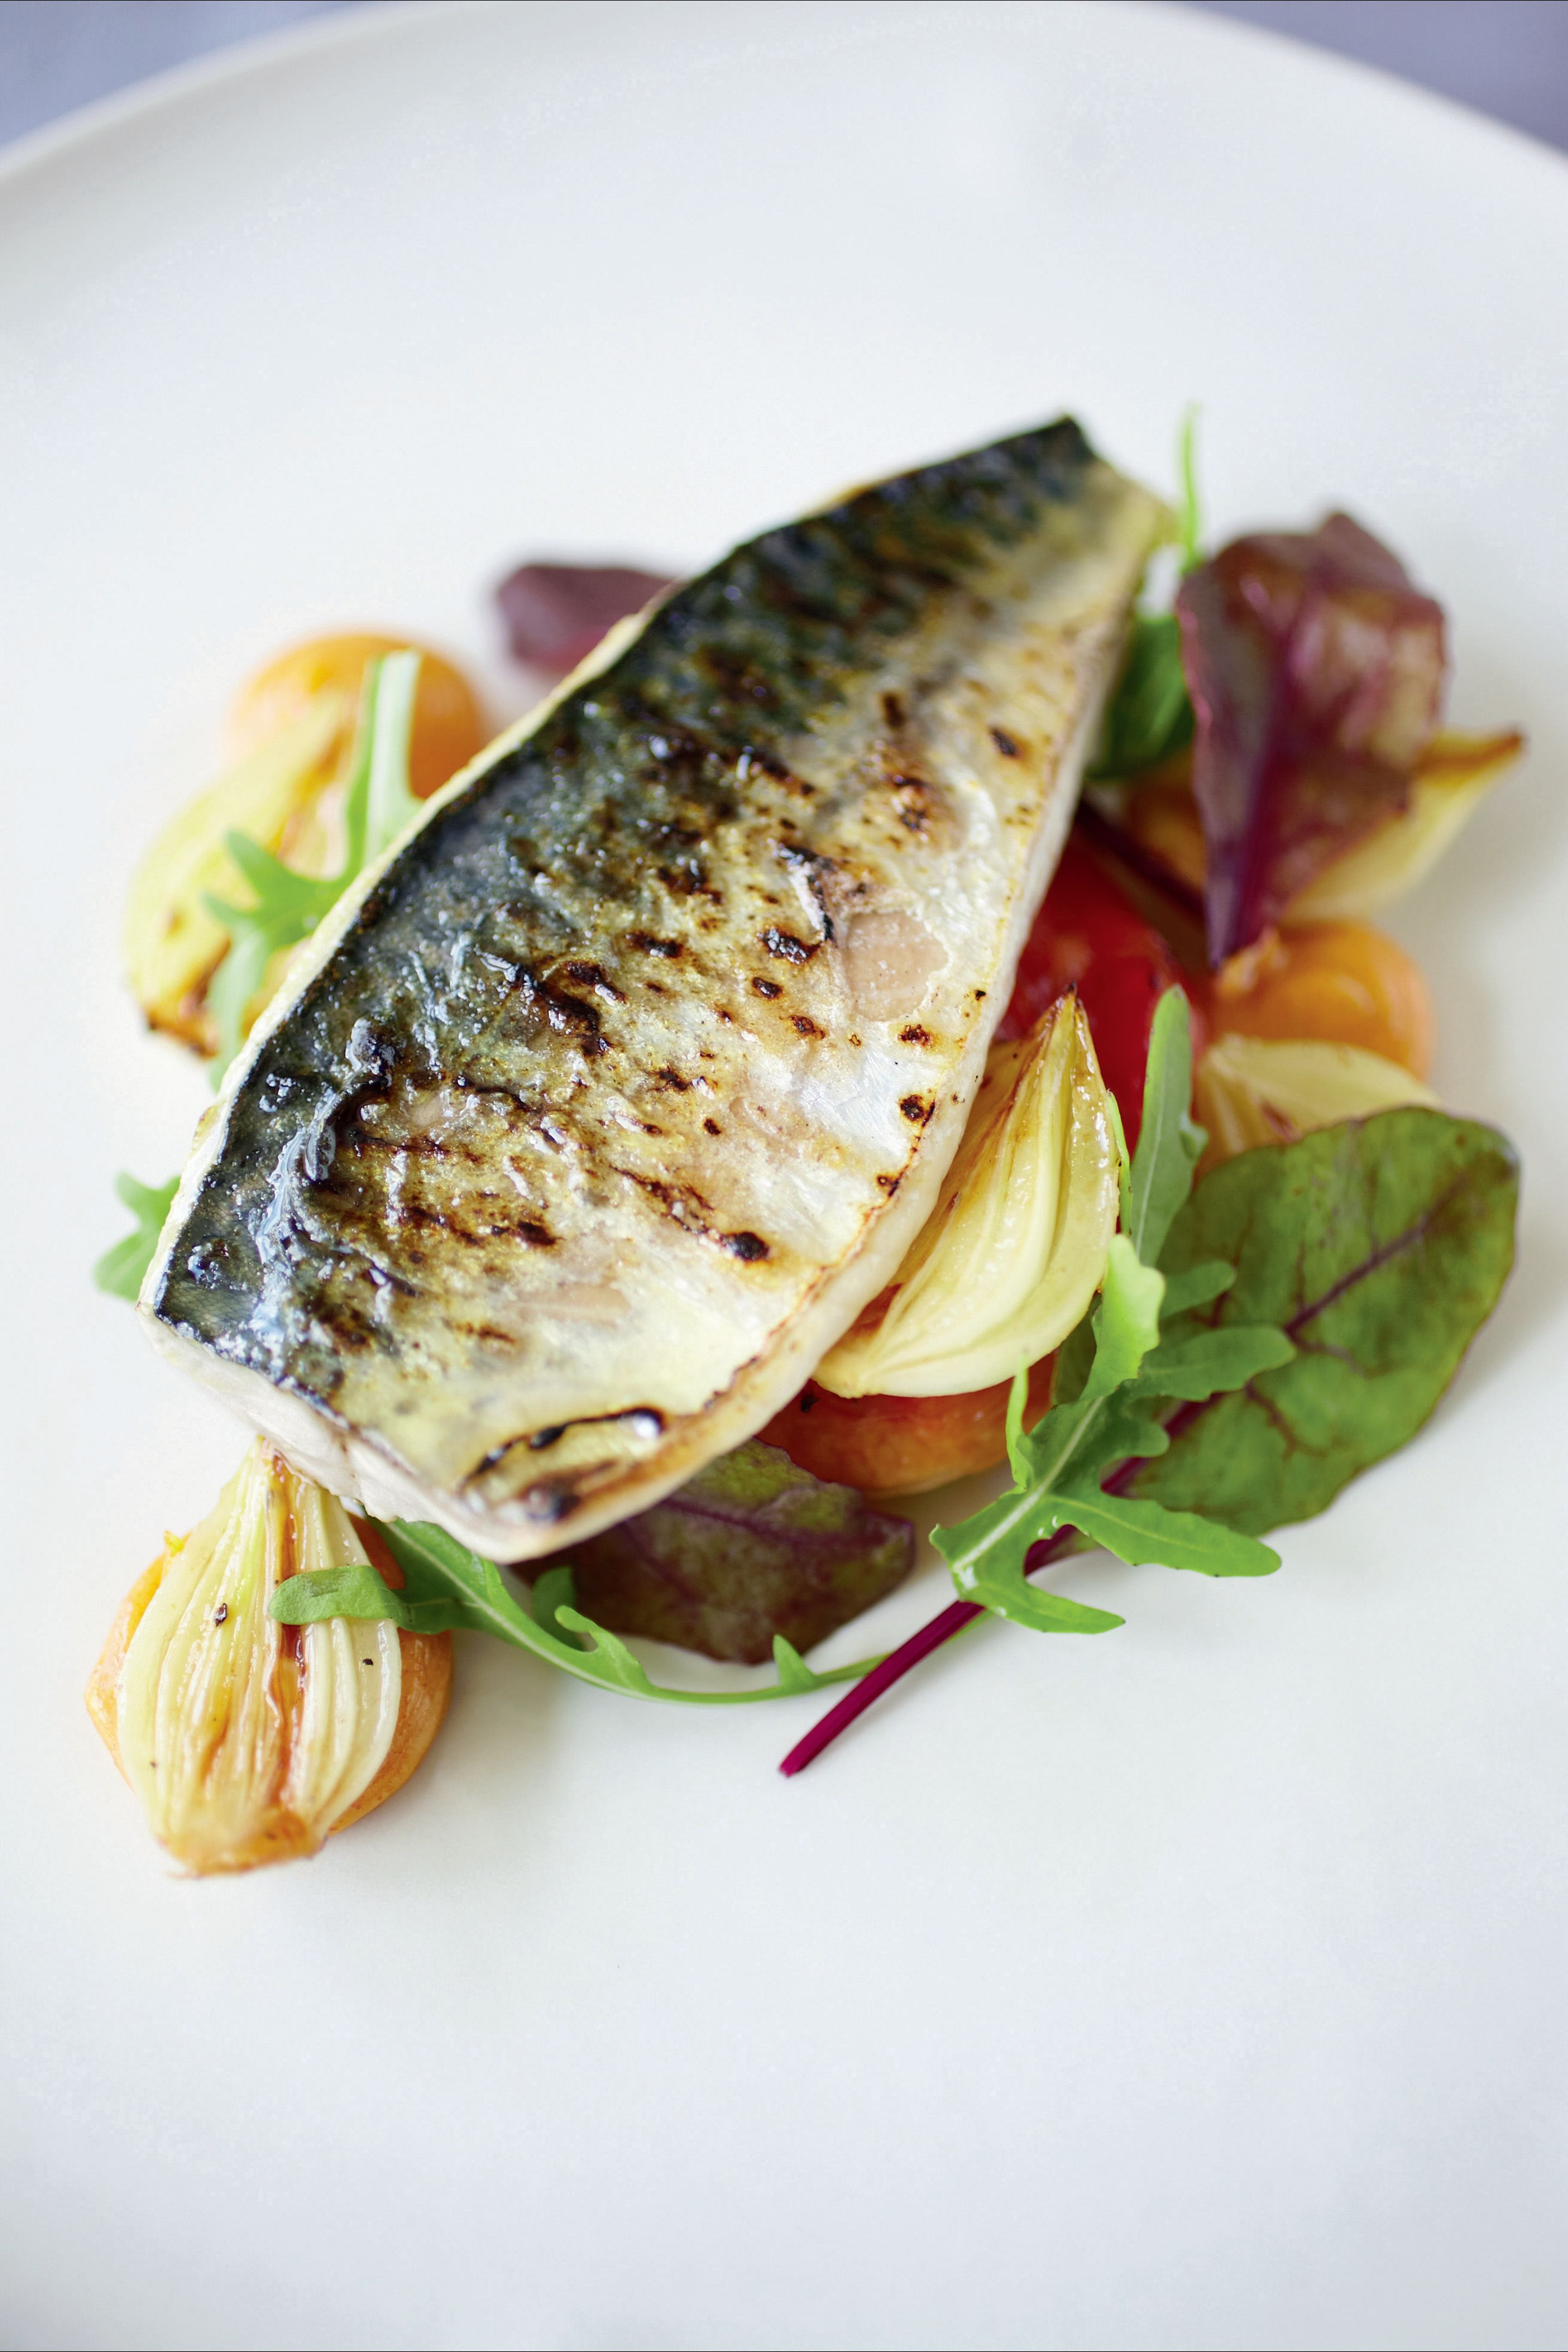 Mackerel on red pepper marmalade tart with smoked paprika mayonnaise